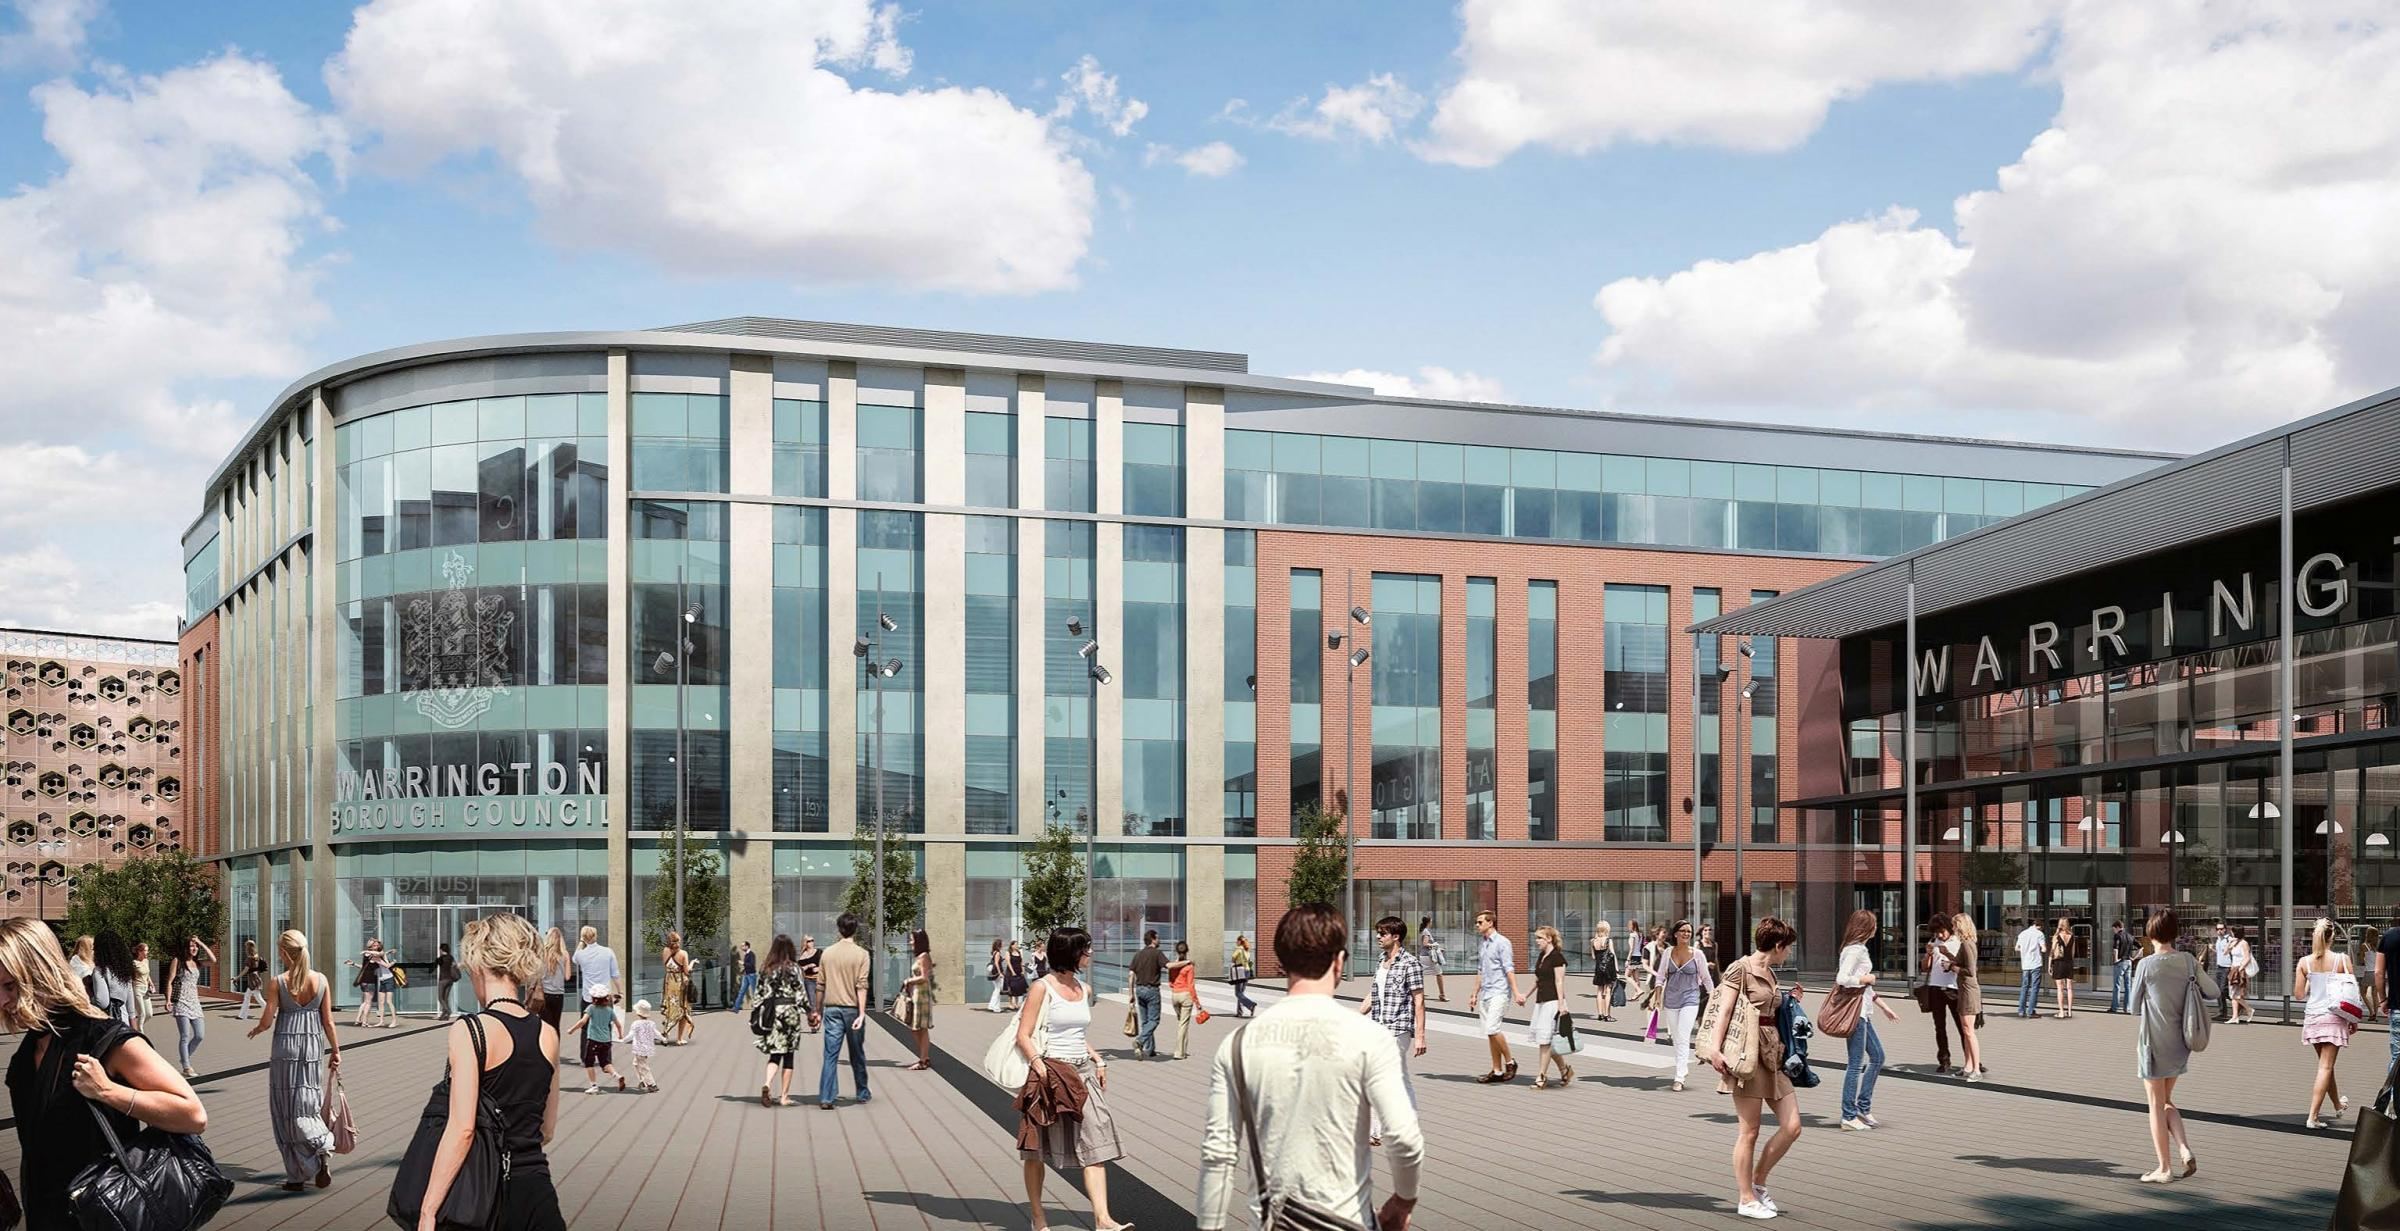 This is the stunning vision for new council offices